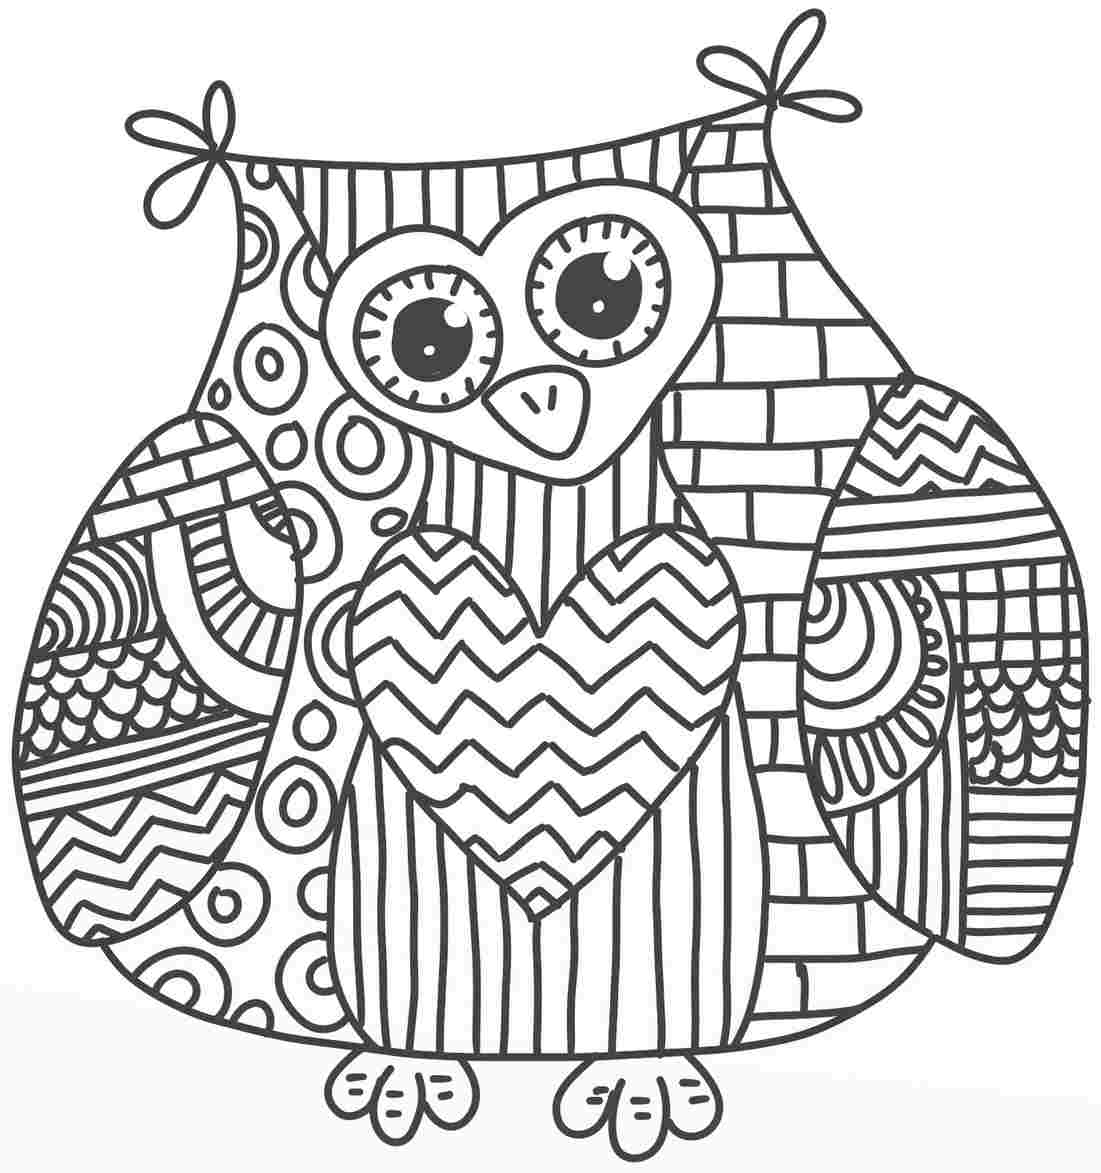 Cute owl coloring pages coloring home for Free coloring pages for adults with dementia